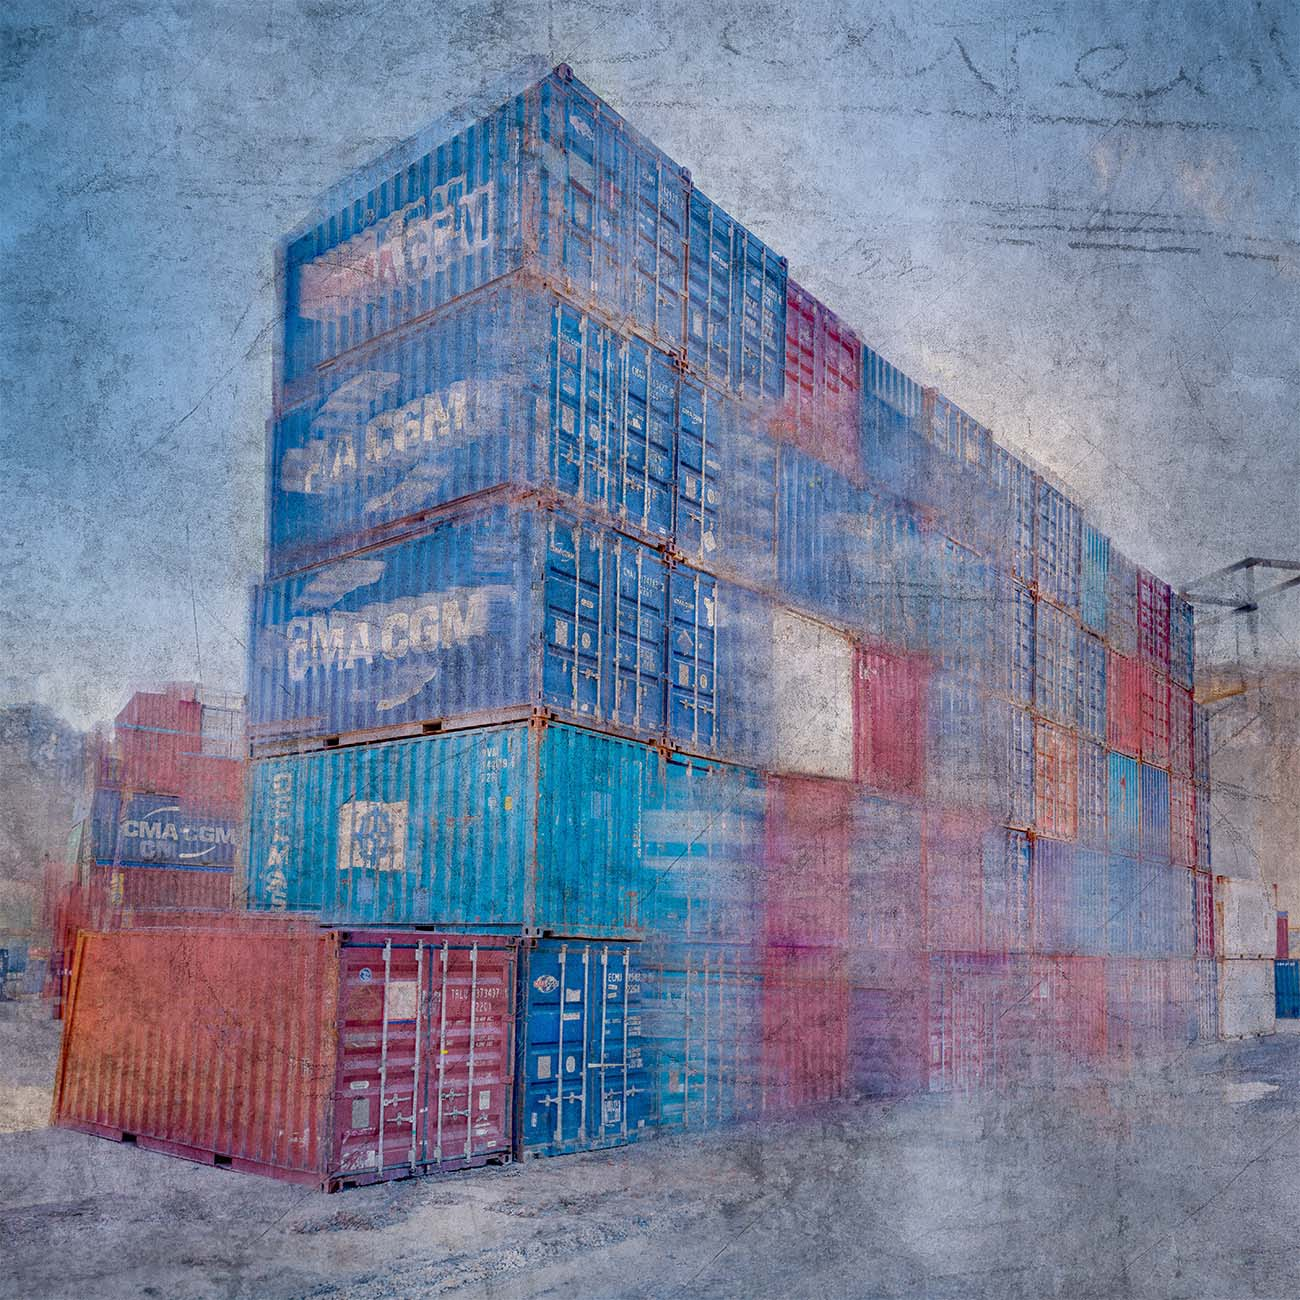 Carrière du Vallon Containers Bleu Marseille Paul-Louis LEGER Photographe